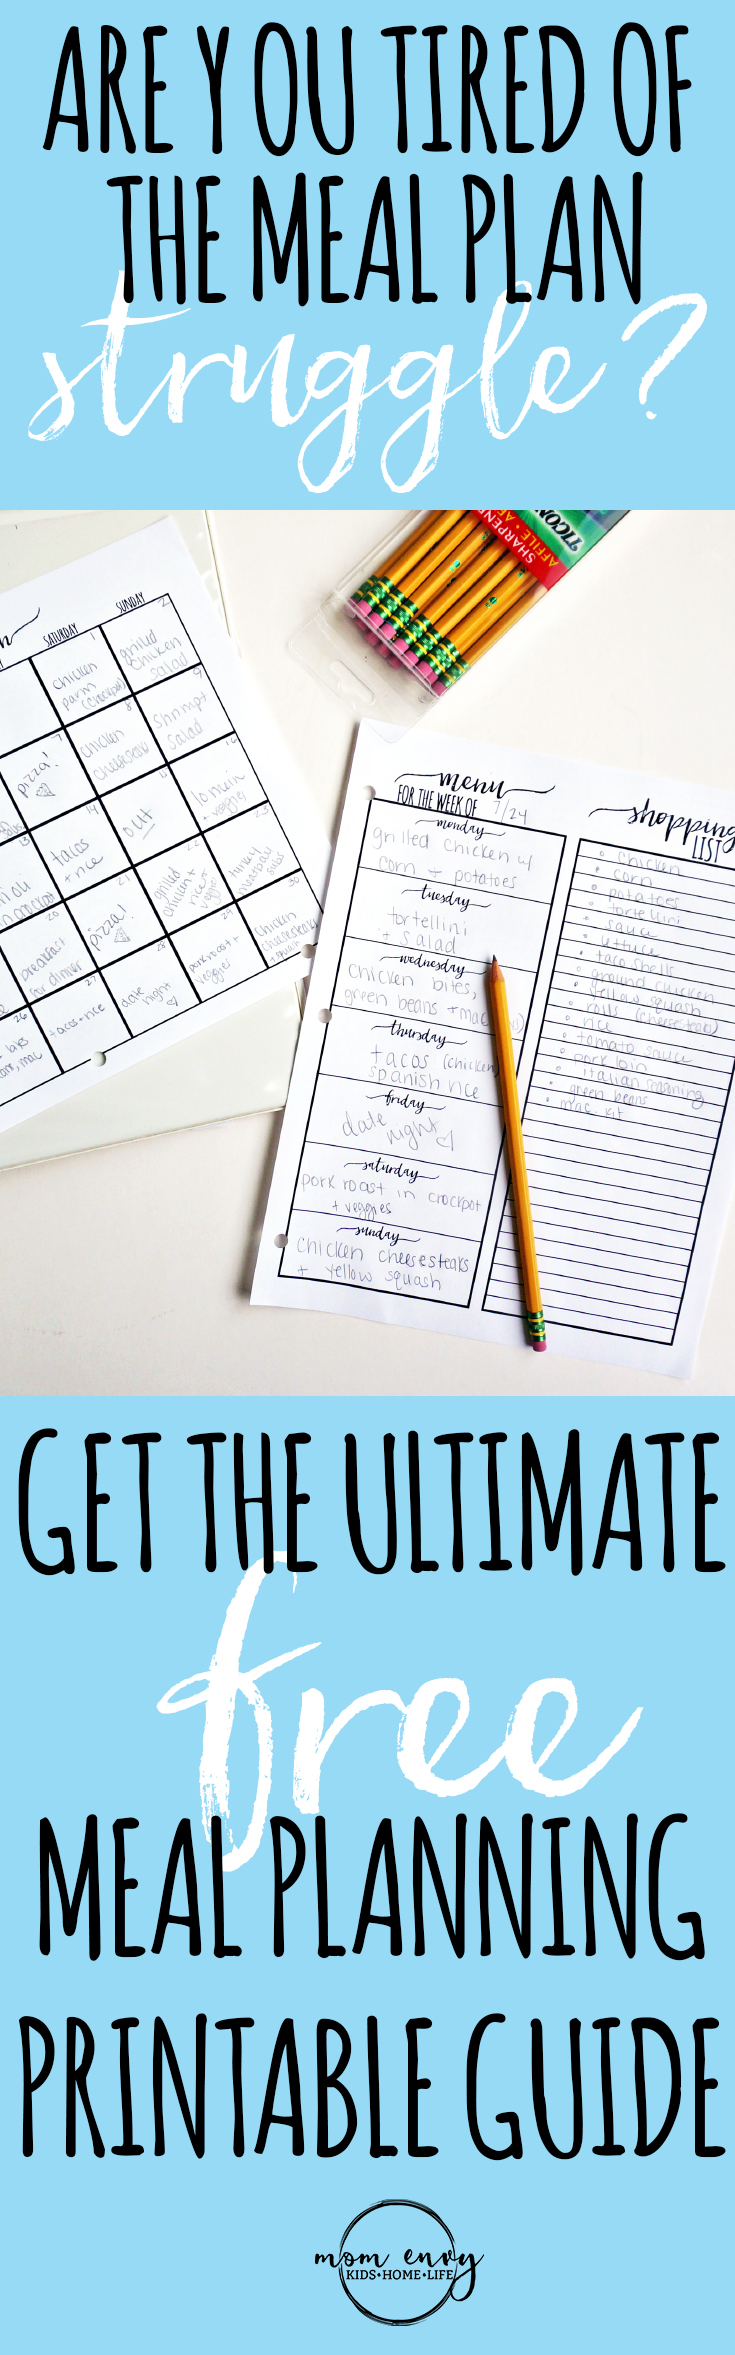 Meal Planning Printables - Get the The Ultimate Guide to Meal Planning. It has everything you need to stop the dinner struggle. Free shopping lists, free meal planning calendar, free weekly meal planners, and more! #organization #planneraddict #happyplanner